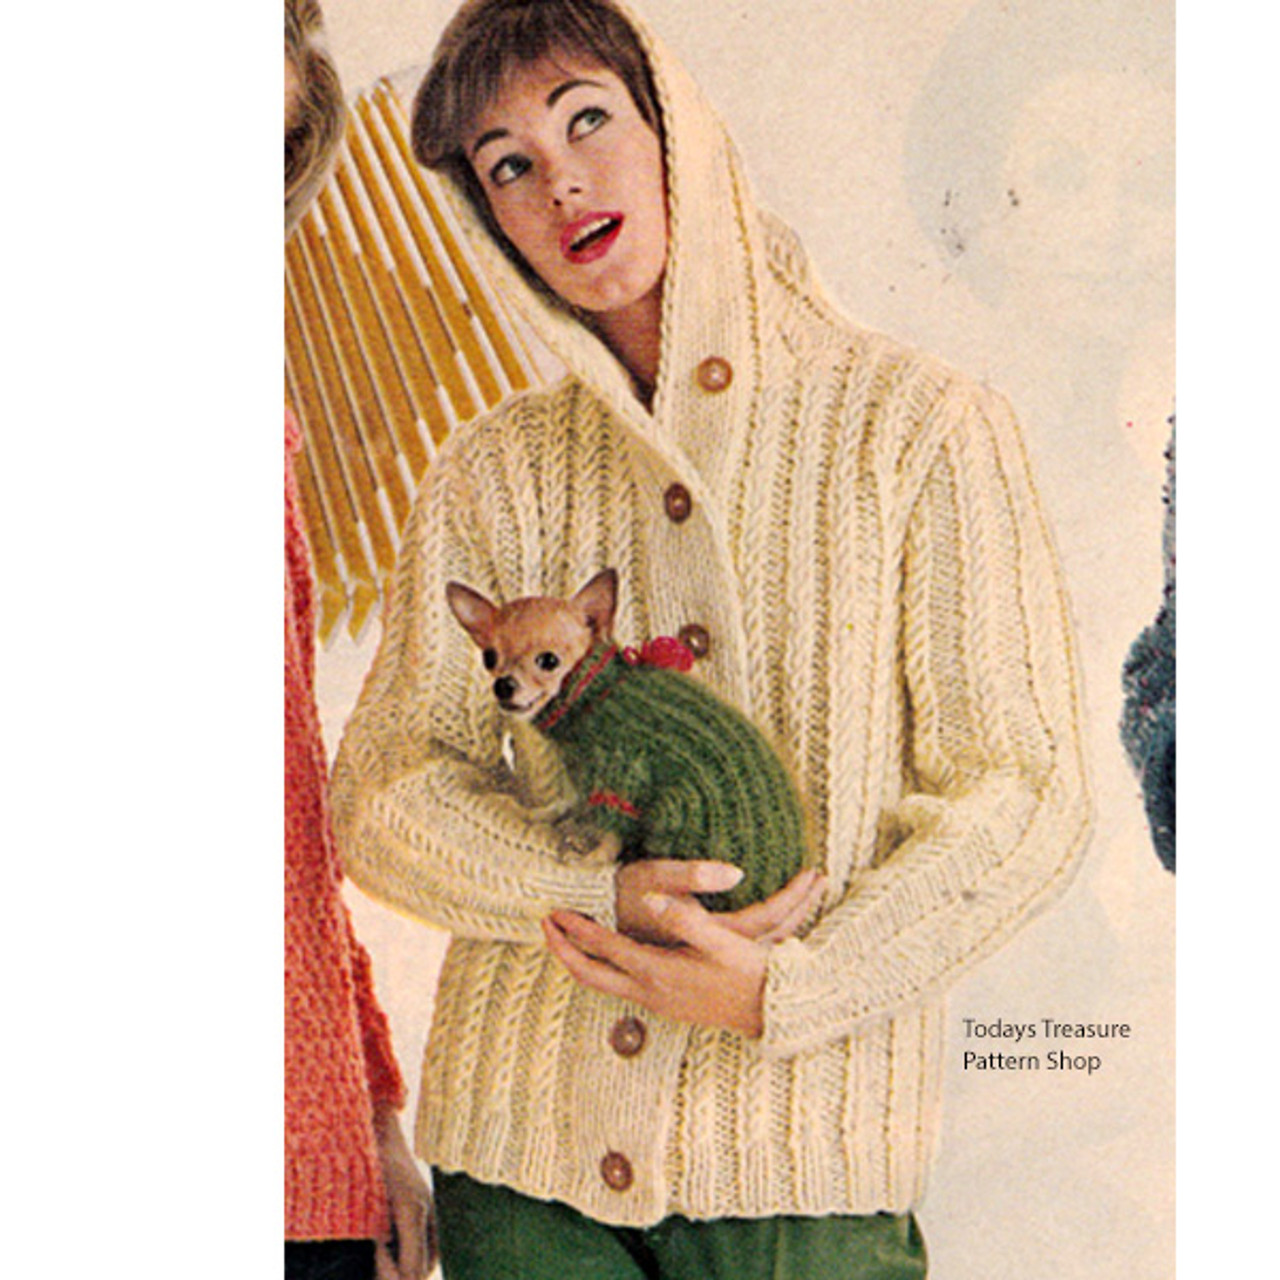 Hooded Ribbed jacket Knitting Pattern, Vintage 1960s